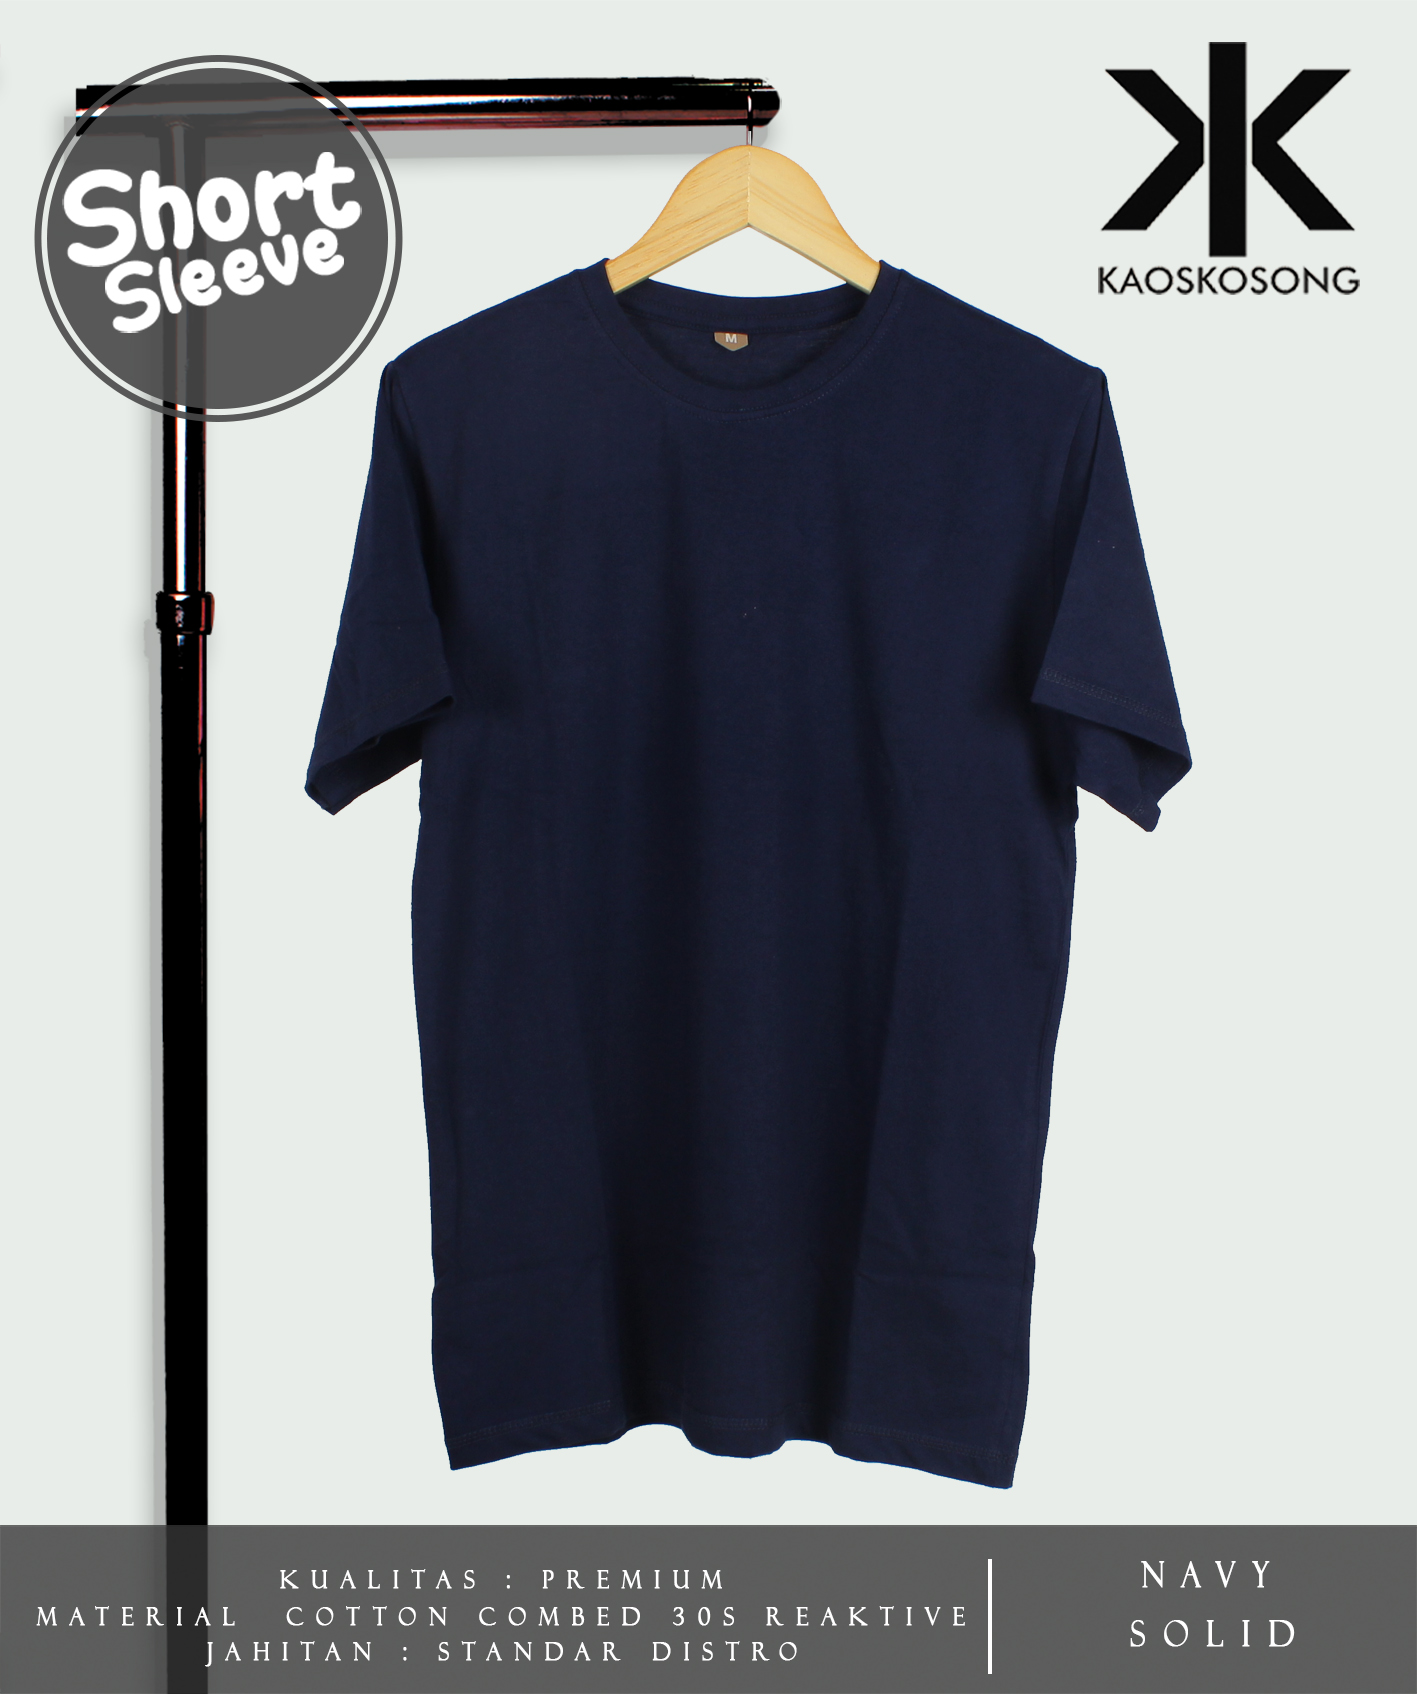 Jual Kaos Polos Navy Solid Cotton Combed 30s Soft Reaktif Blank Misty Hat Tokopedia